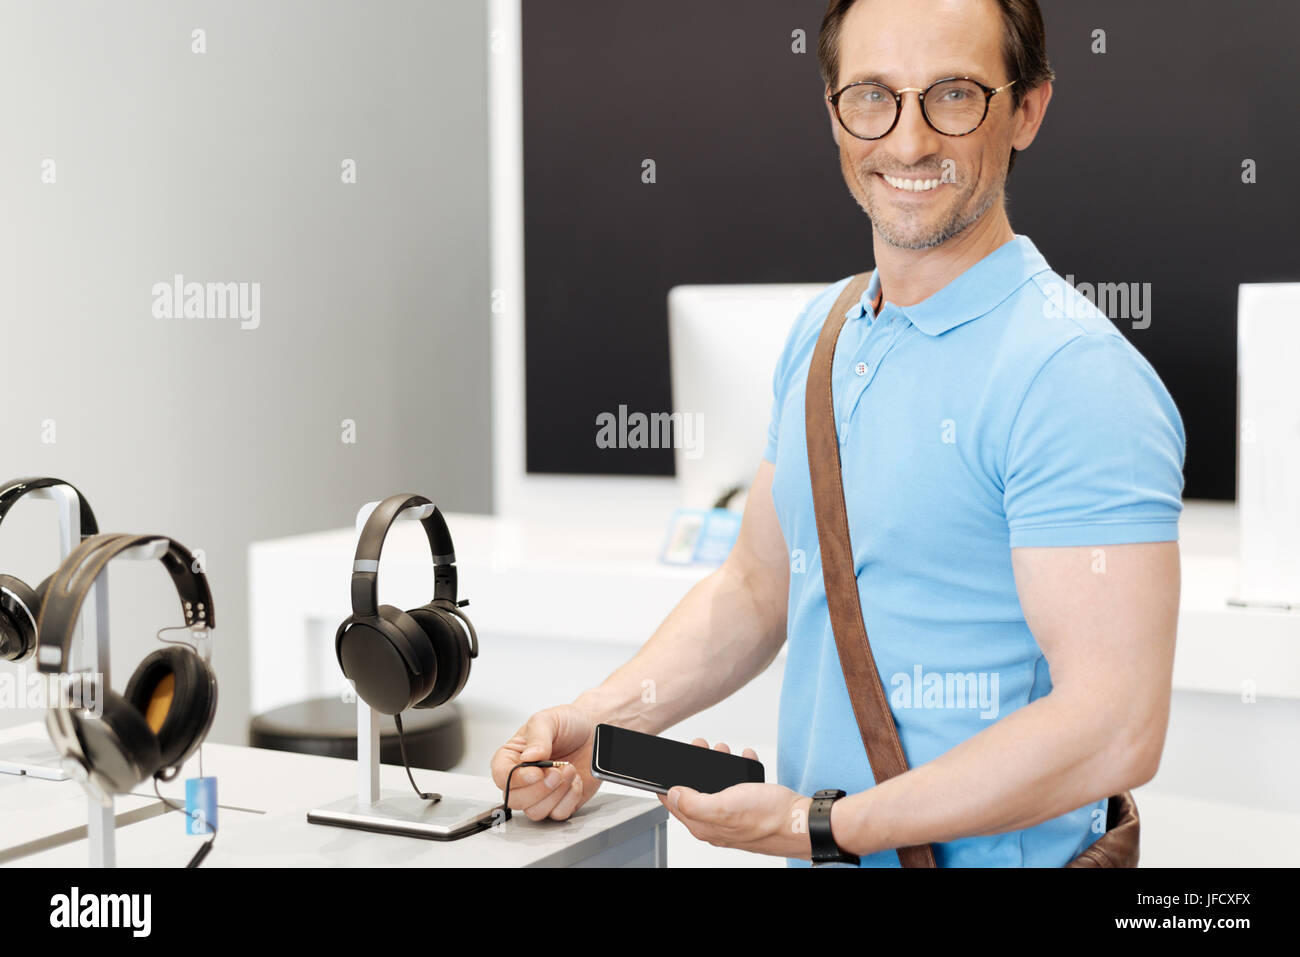 What a perfect pair of headphones. Positive man grinning widely while connecting a pair of black mockup headphones - Stock Image